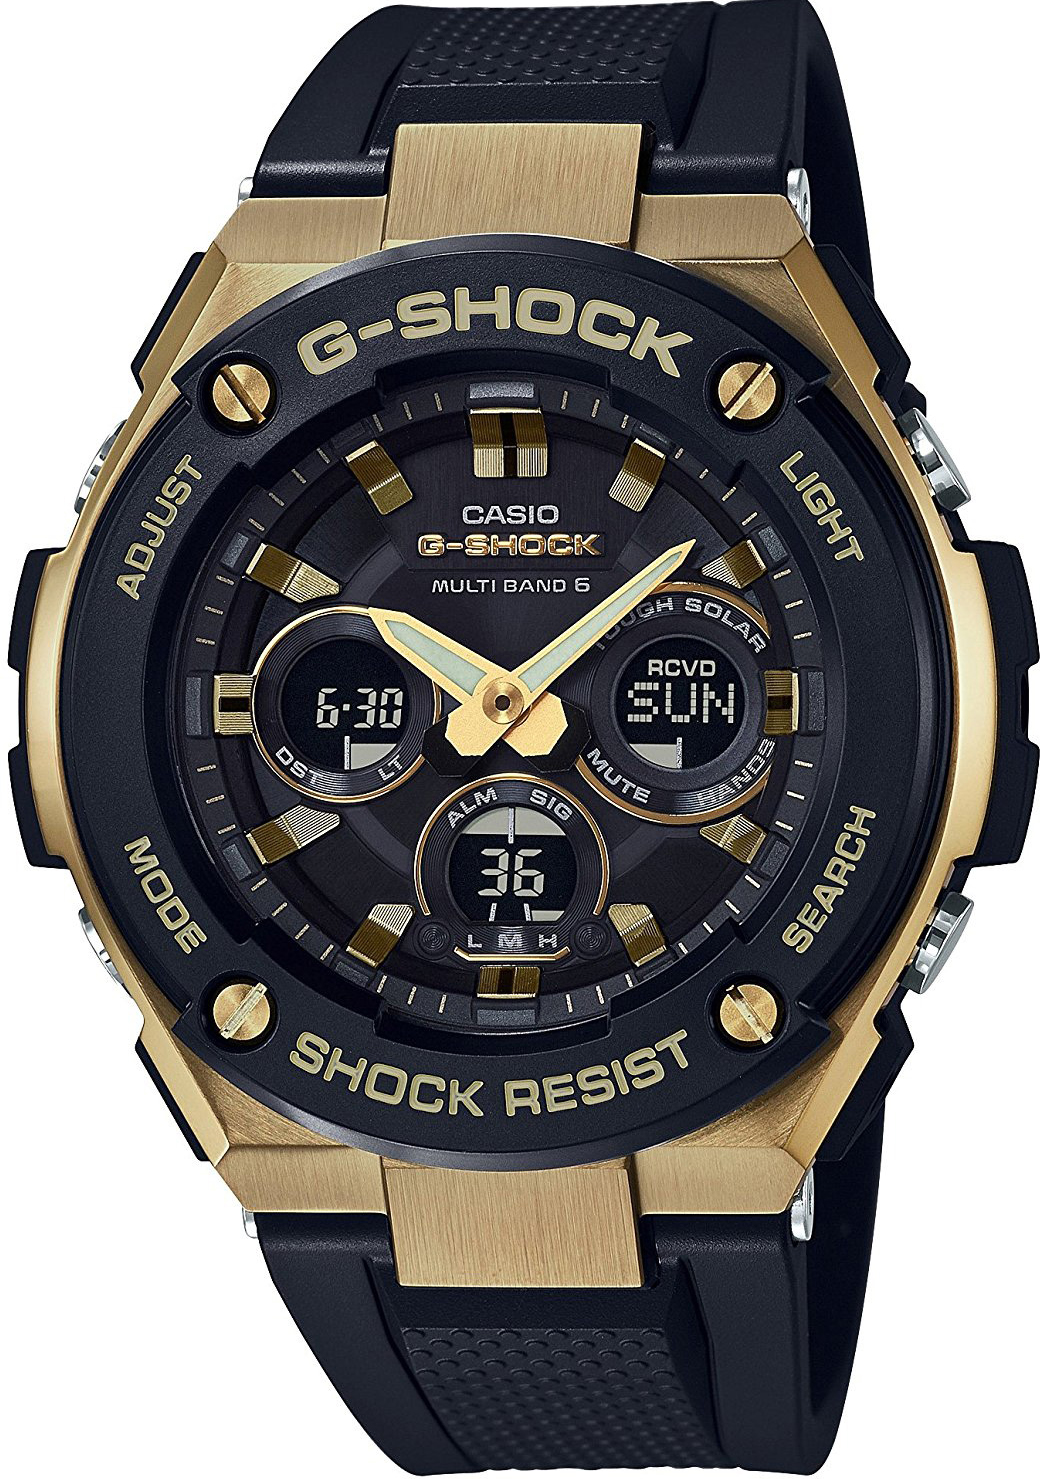 Casio G-shock G-Steel GST-W300G-1A9 g